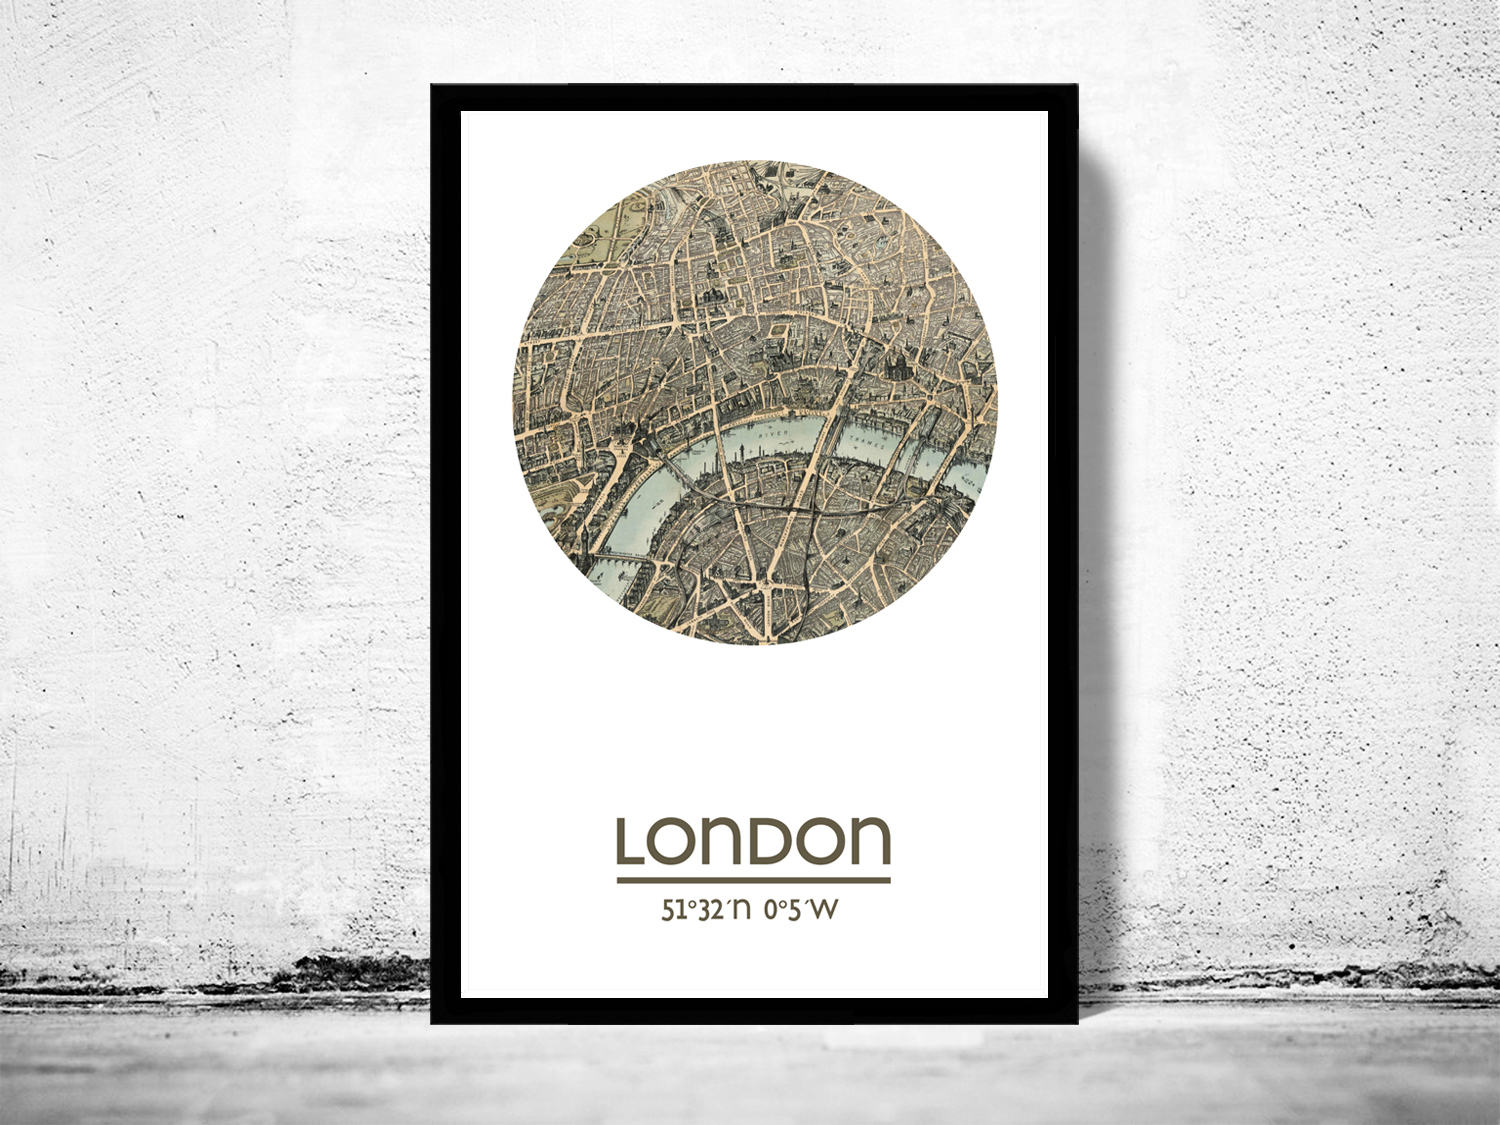 LONDON - city poster (2) - city map poster print on Storenvy